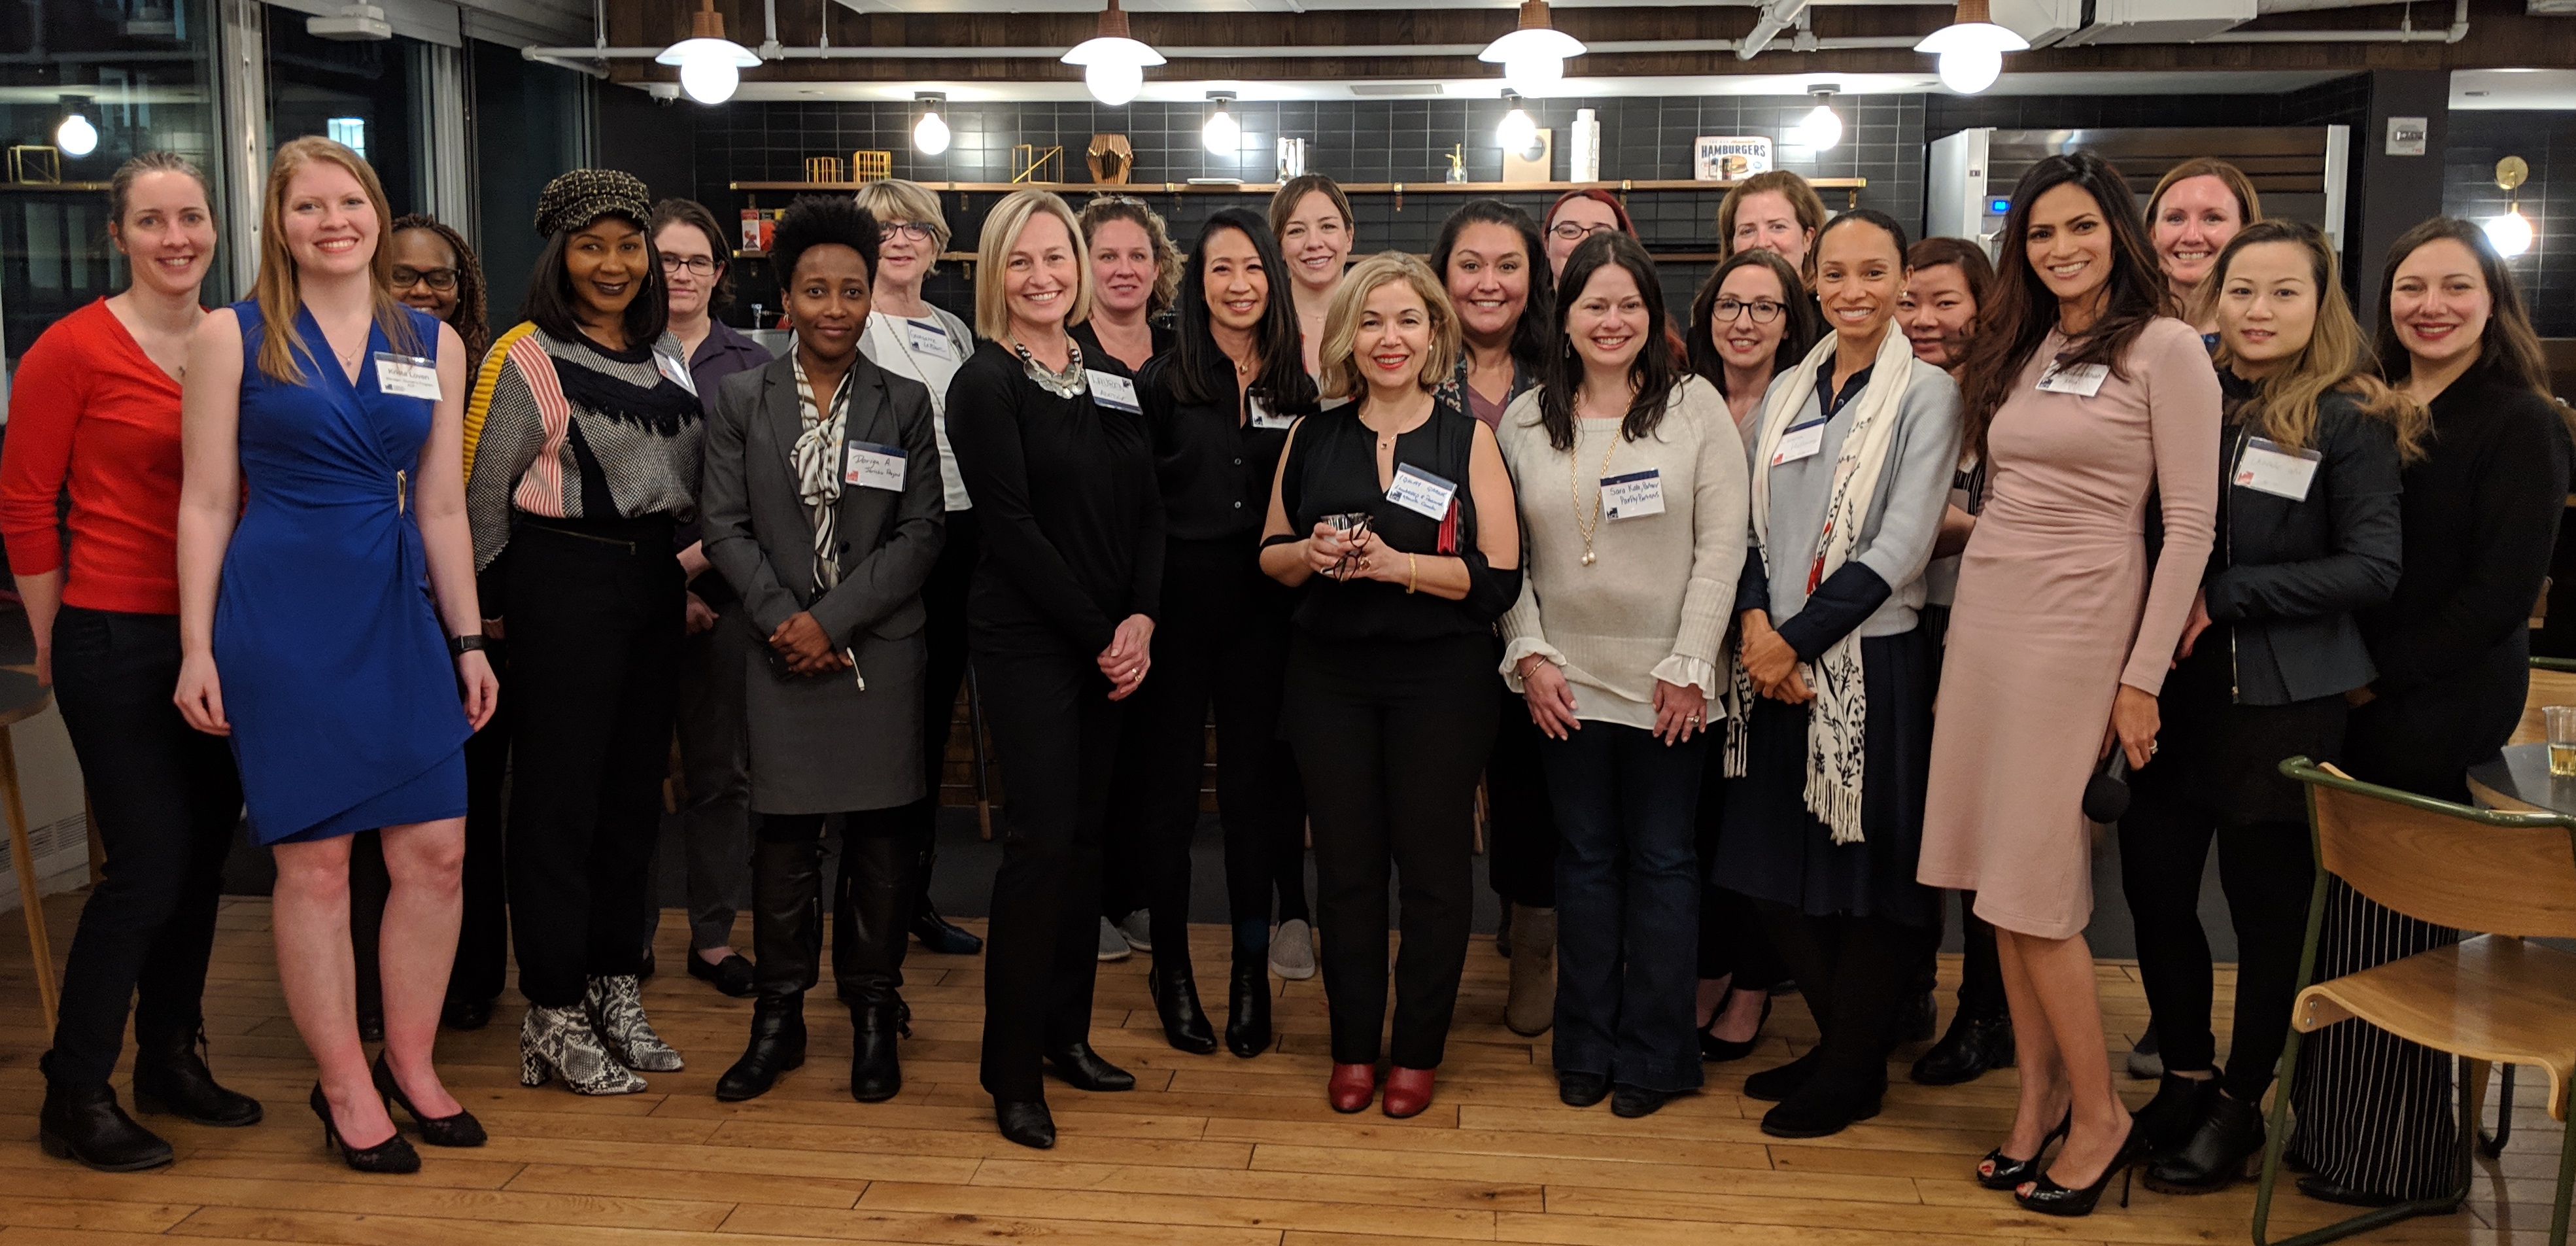 Women Networking in NYC